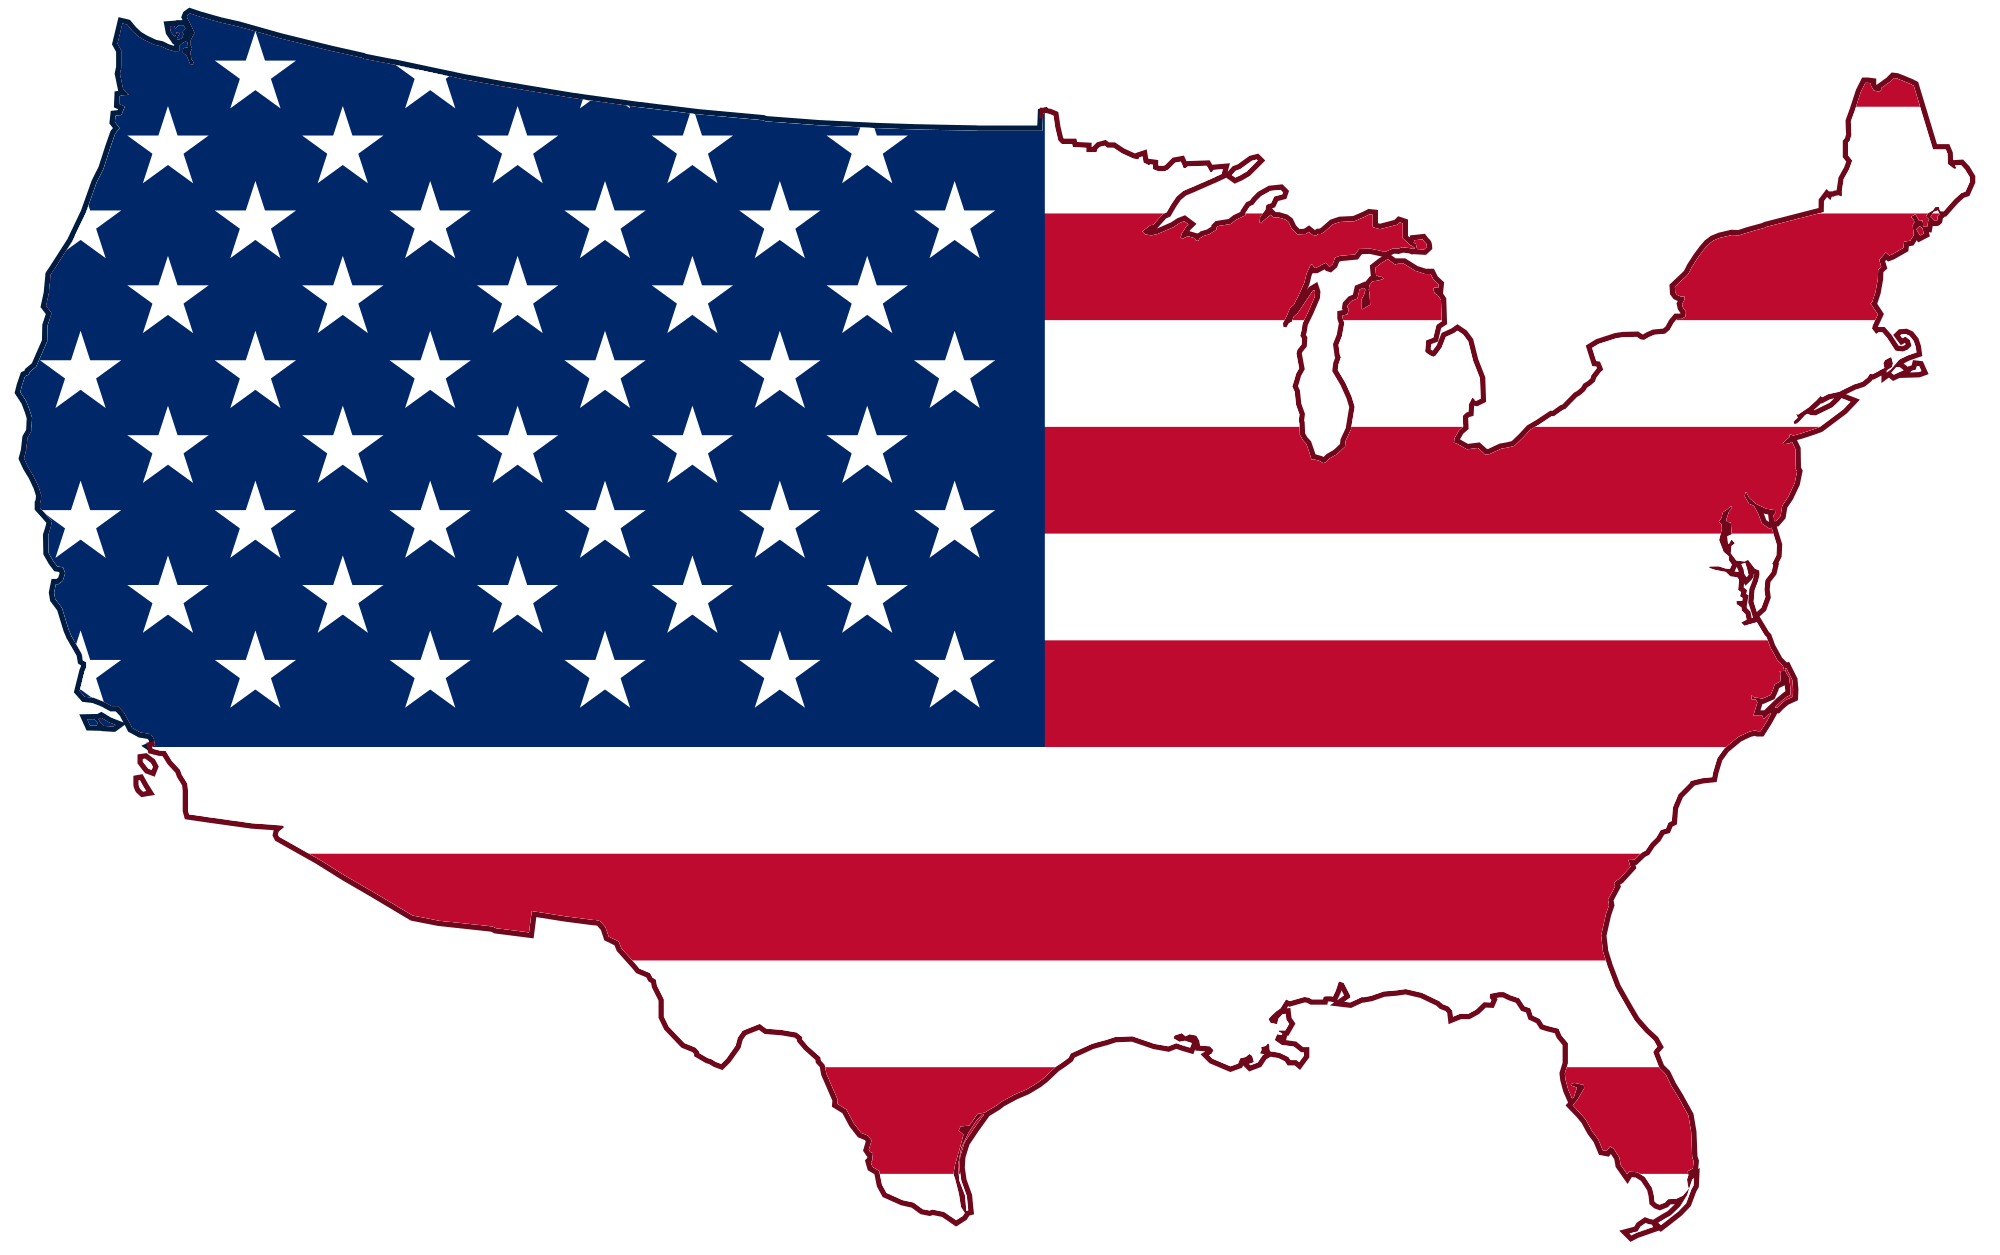 Usa flag png image. Map transparent stickpng download